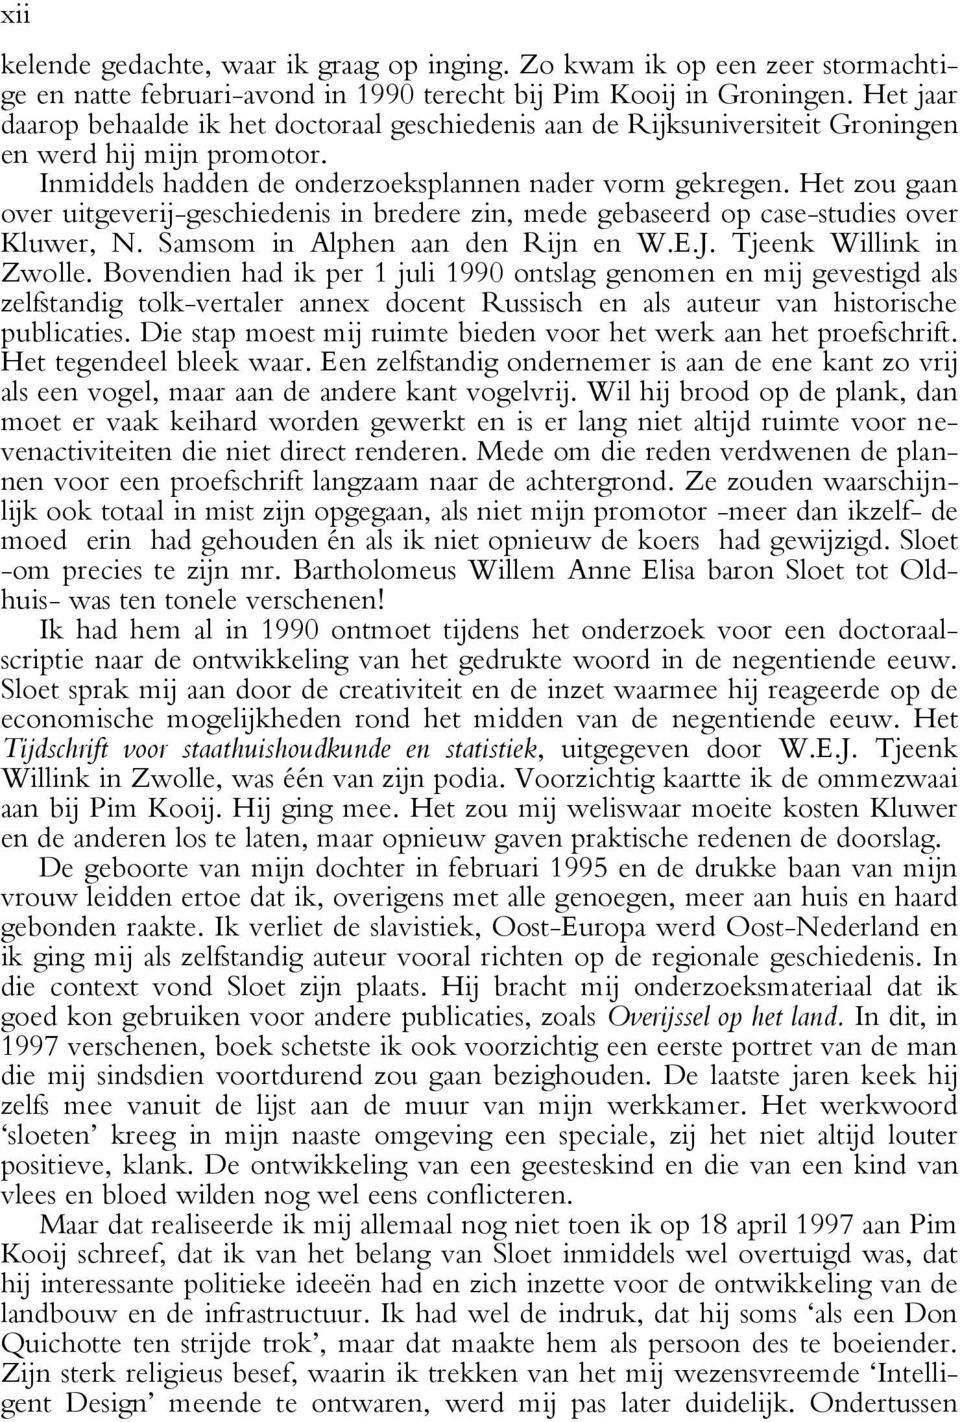 Het zou gaan over uitgeverij-geschiedenis in bredere zin, mede gebaseerd op case-studies over Kluwer, N. Samsom in Alphen aan den Rijn en W.E.J. Tjeenk Willink in Zwolle.